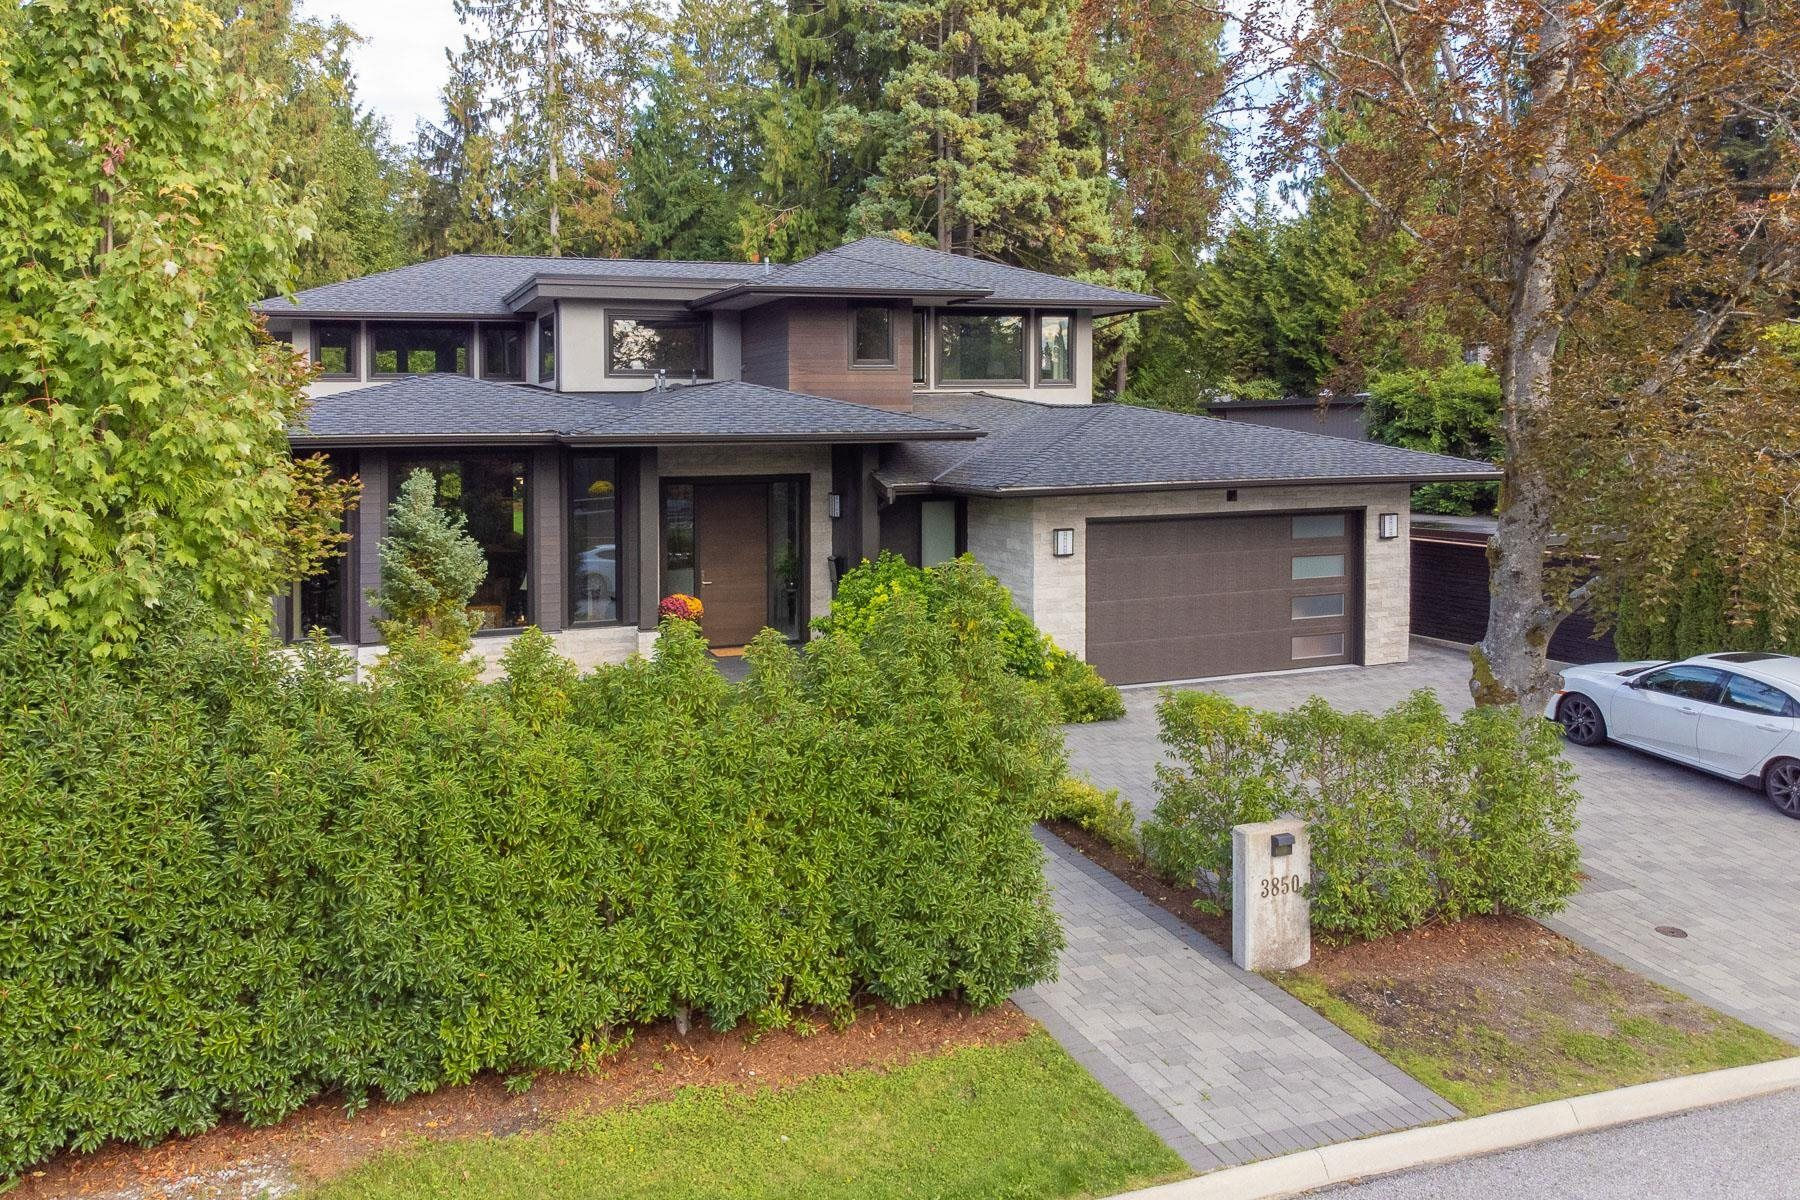 Main Photo: 3850 HILLCREST Avenue in North Vancouver: Edgemont House for sale : MLS®# R2621492